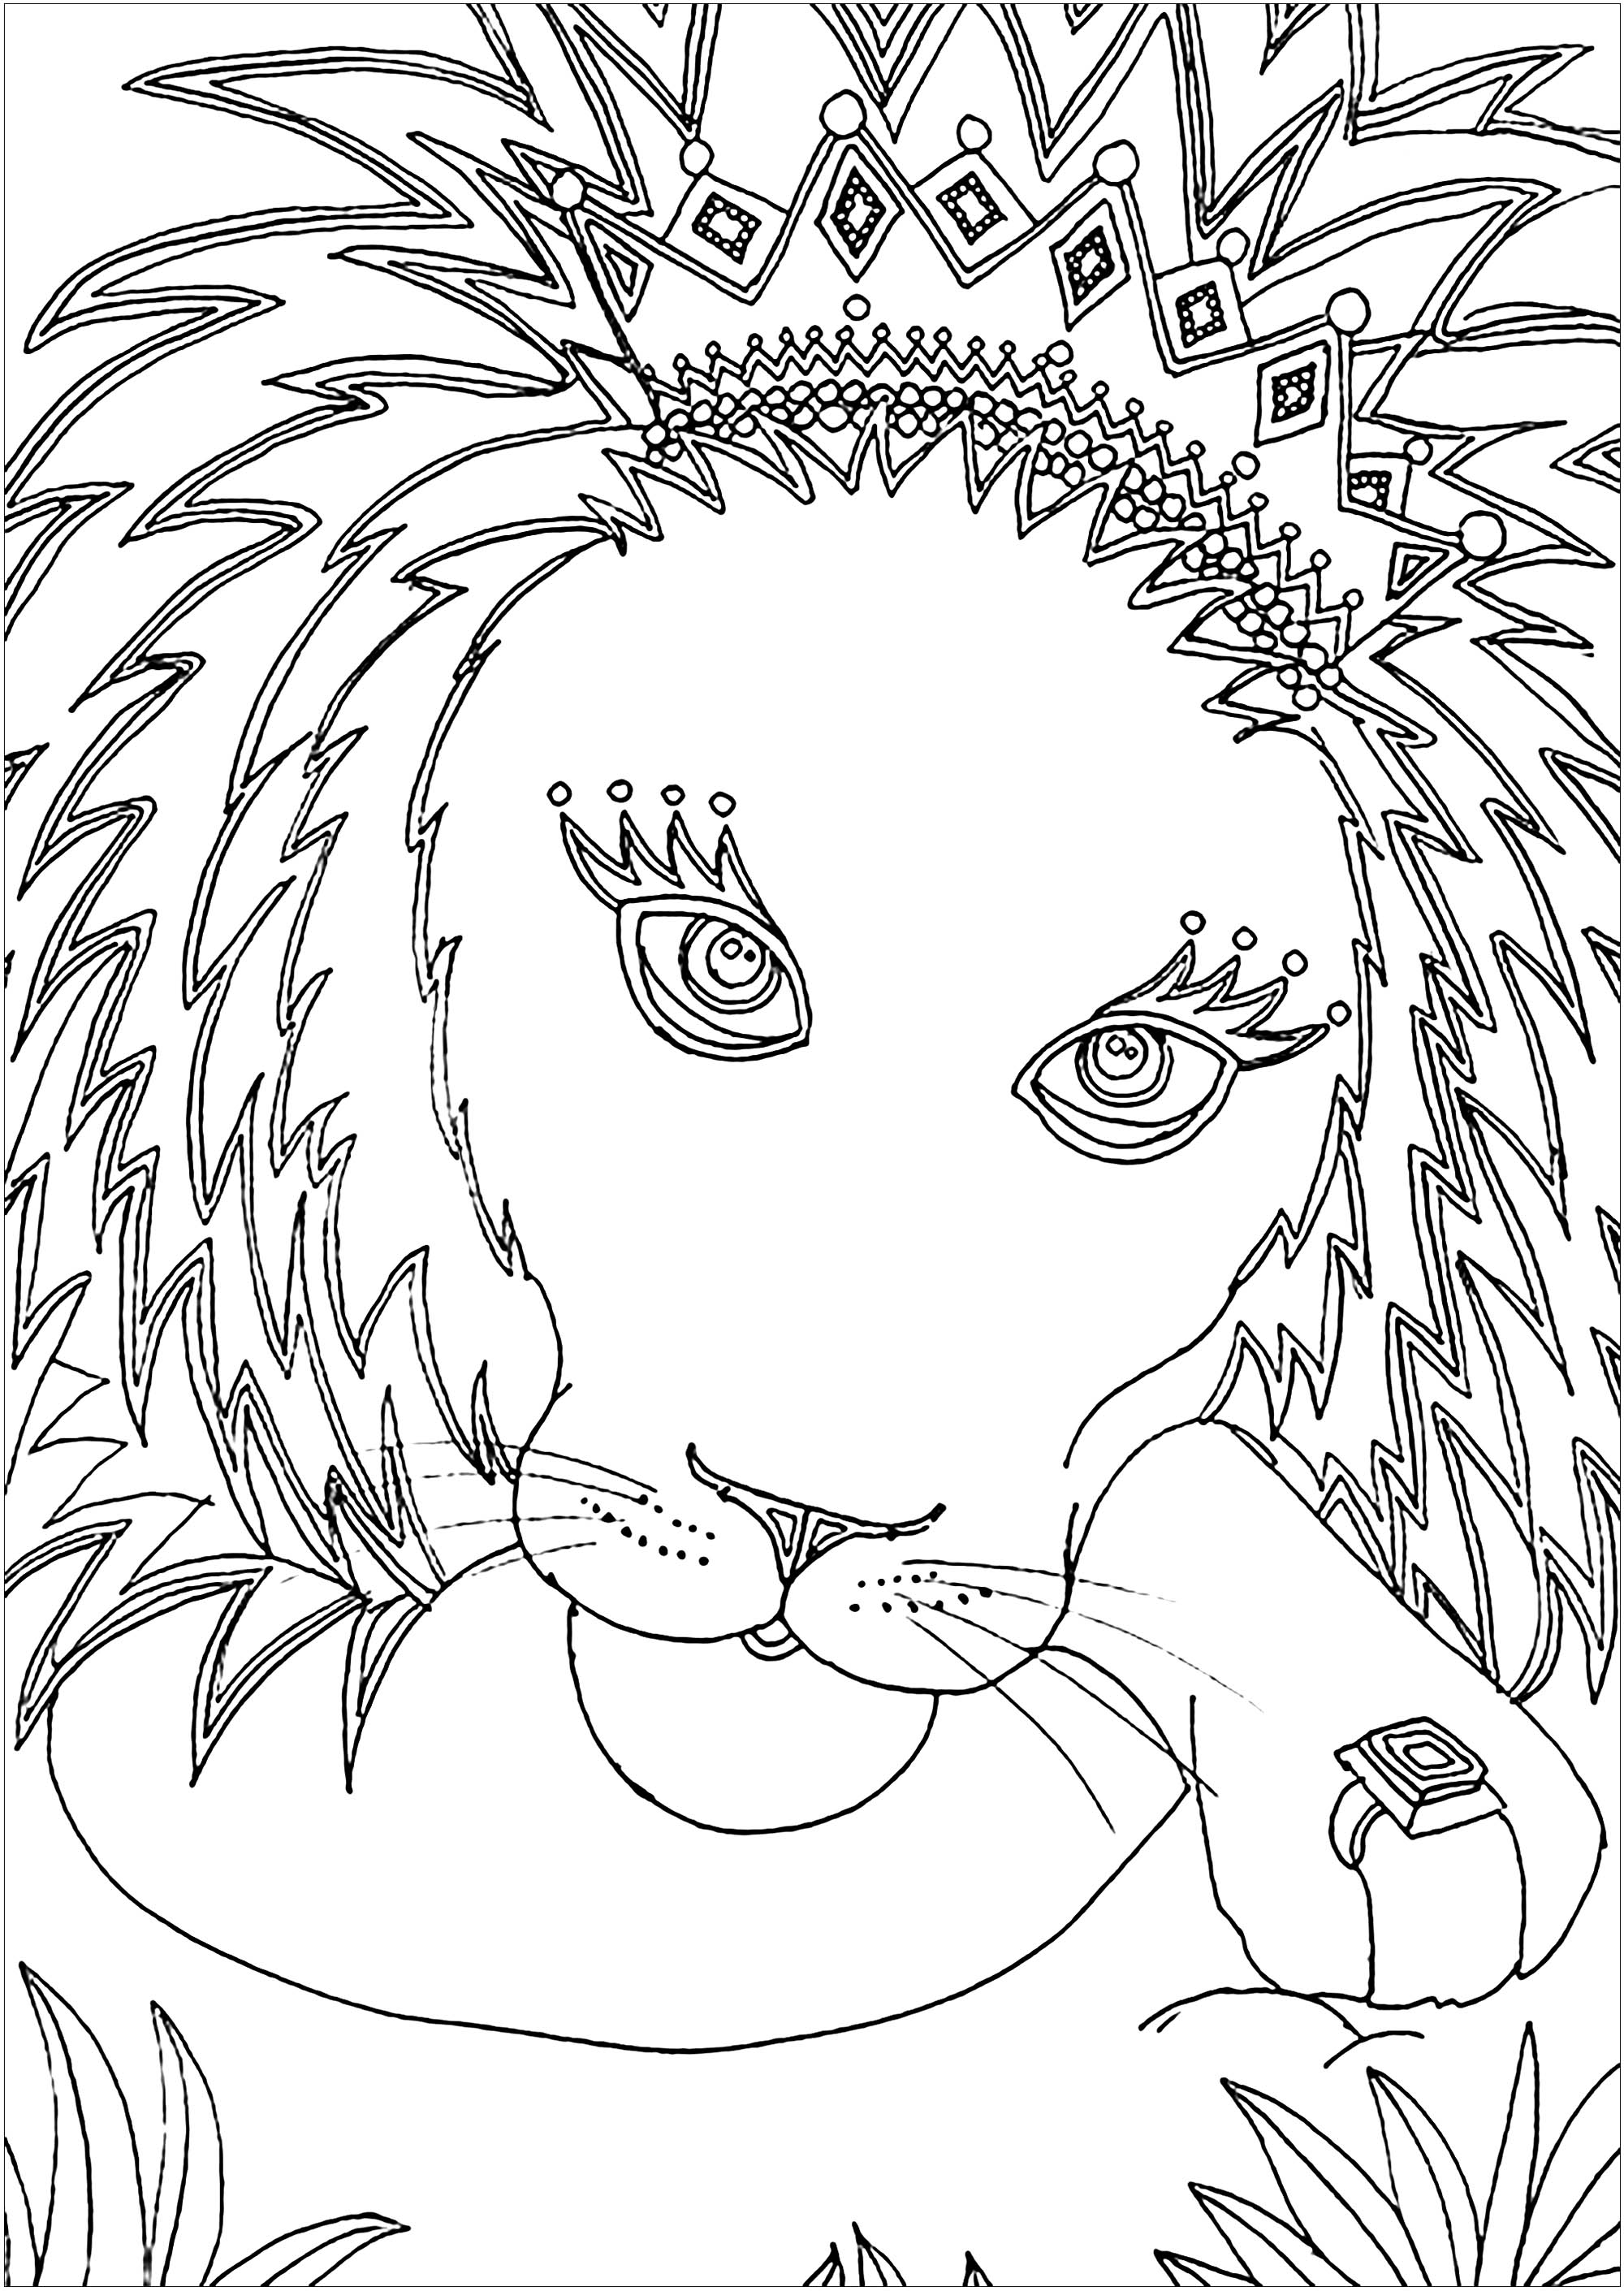 coloring pages for kids lion free easy to print lion coloring pages tulamama lion kids for coloring pages